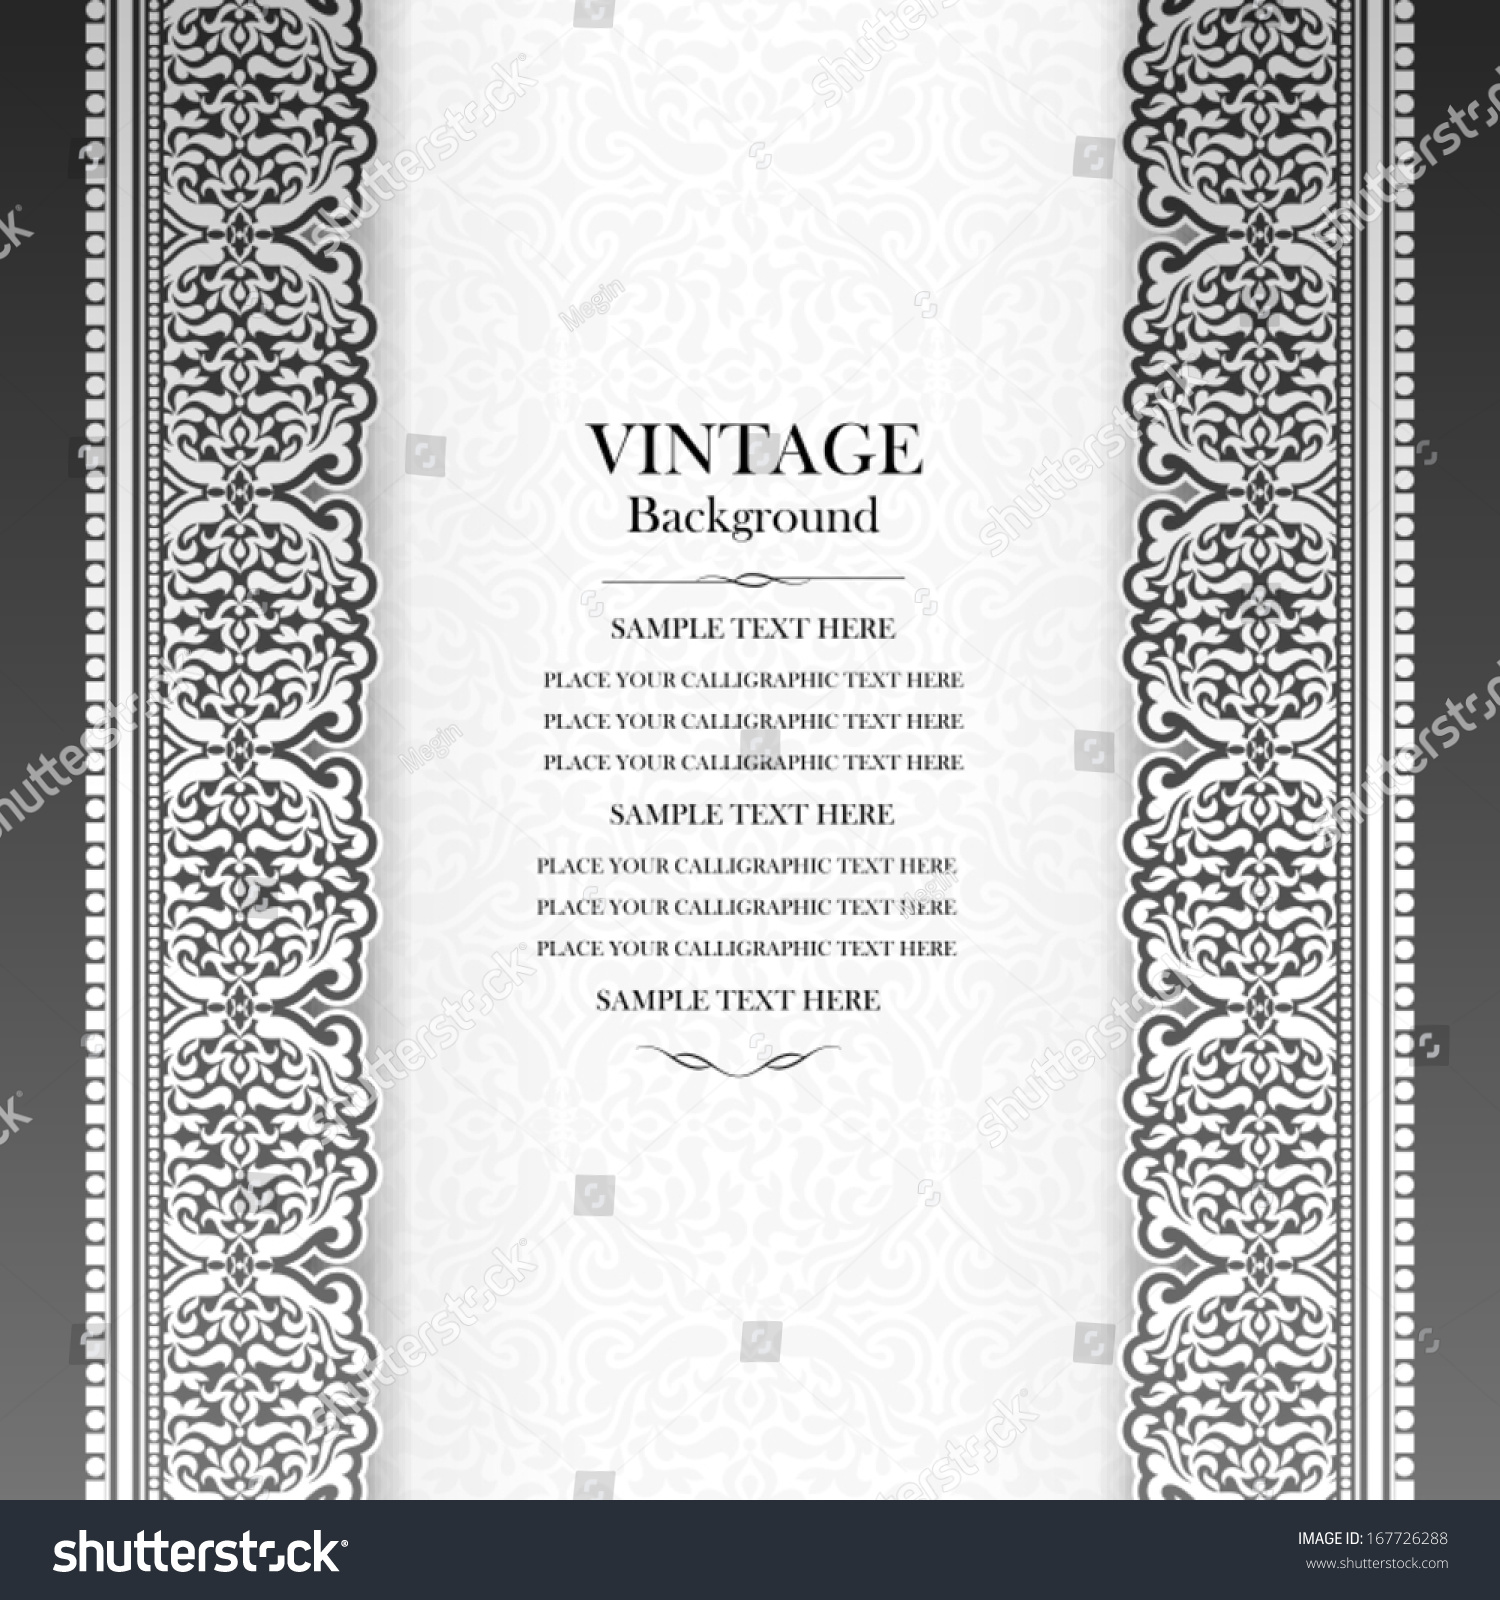 Beautiful Book Cover Template ~ Vintage background design elegant book cover stock vector